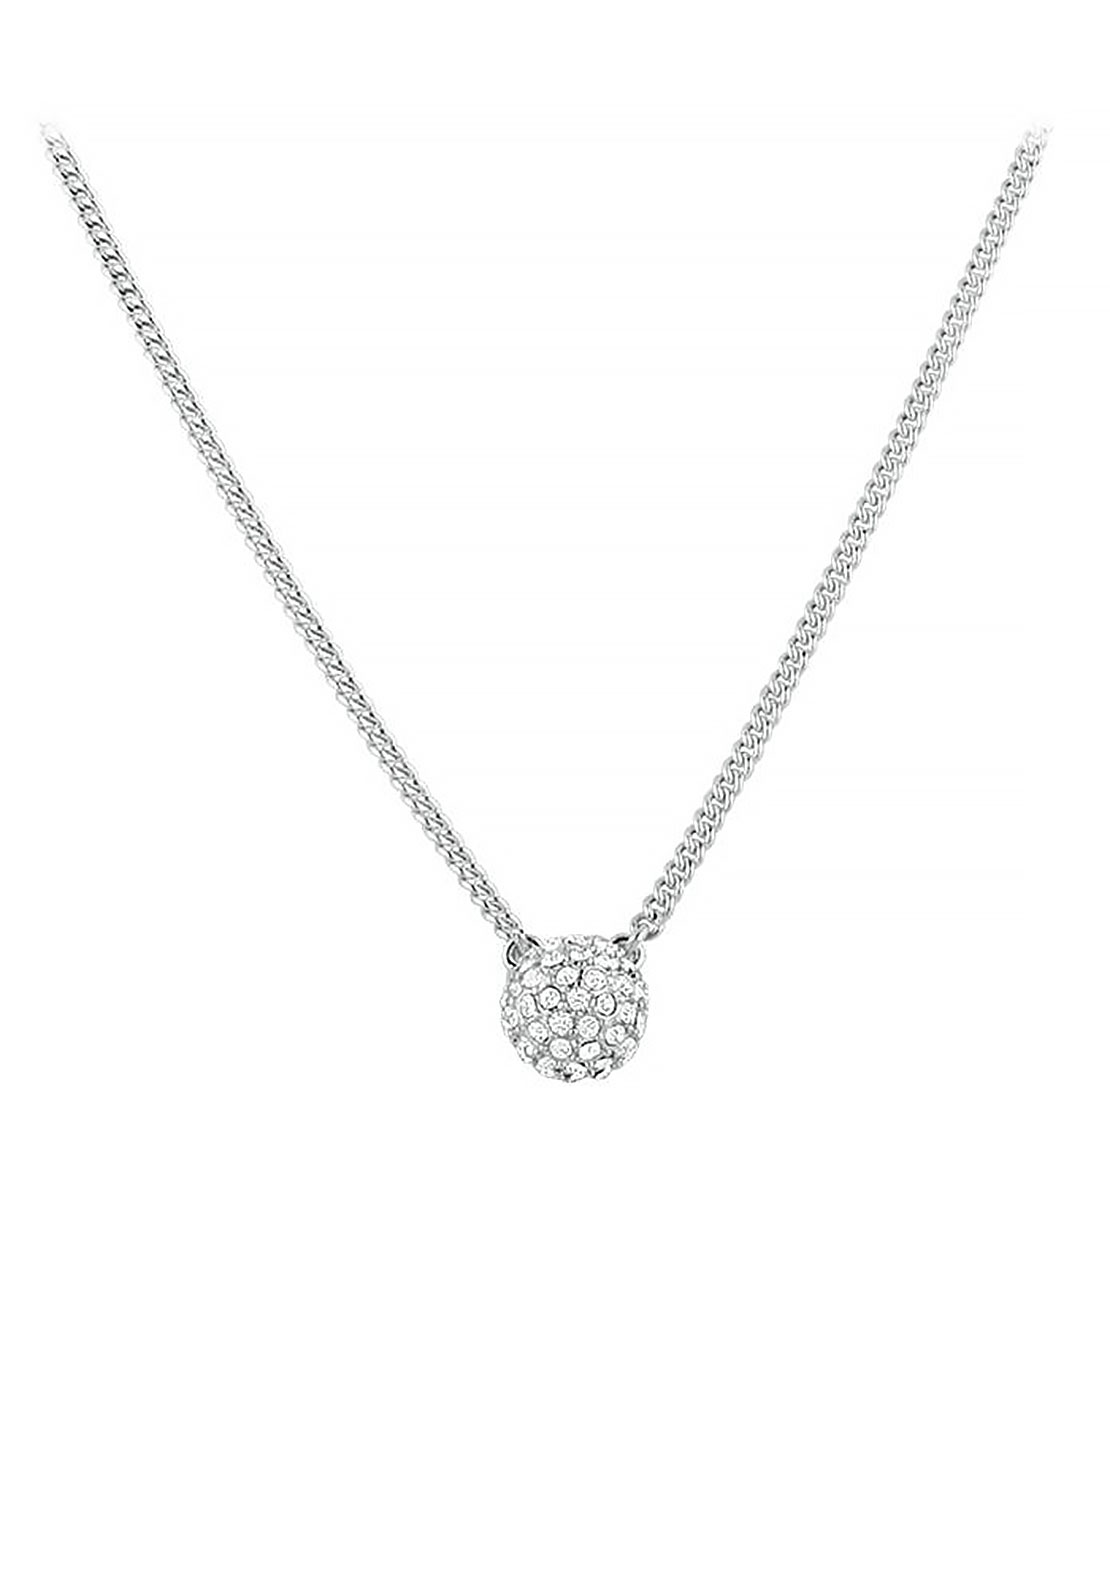 Dyrberg Kern Fiuma Chain Necklace, Silver